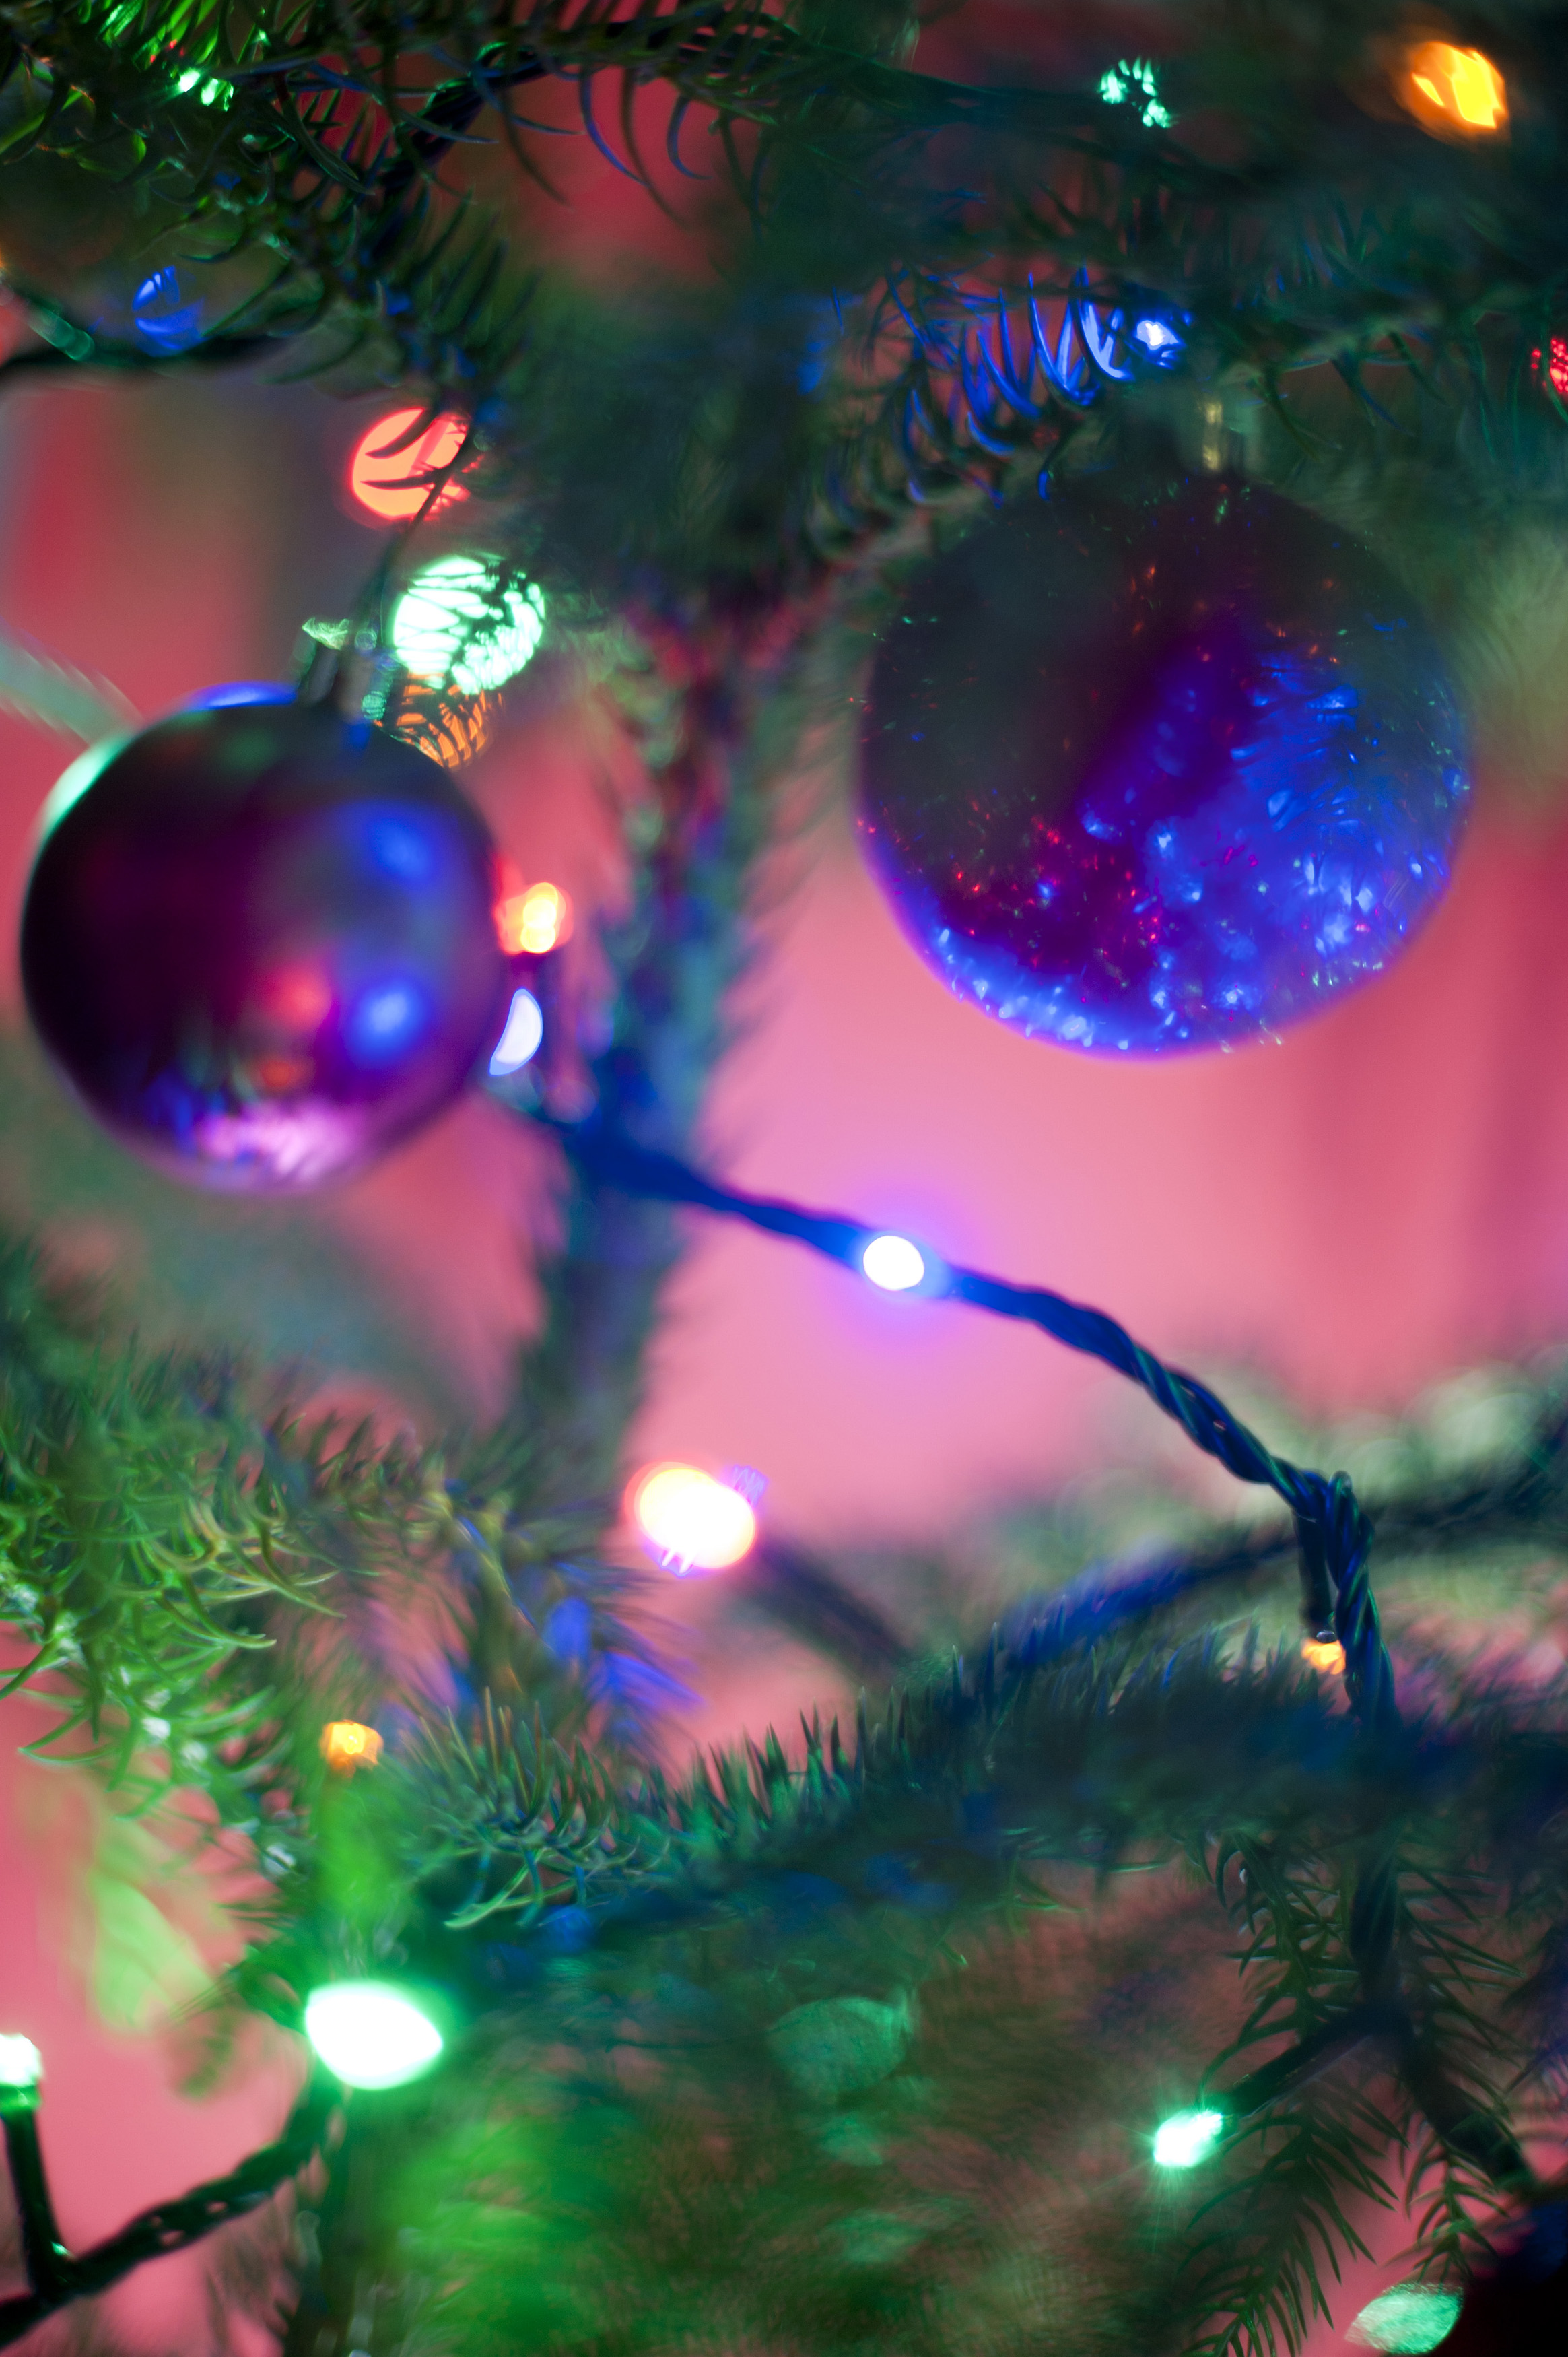 Free Image Of Close Up Decorated Christmas Tree